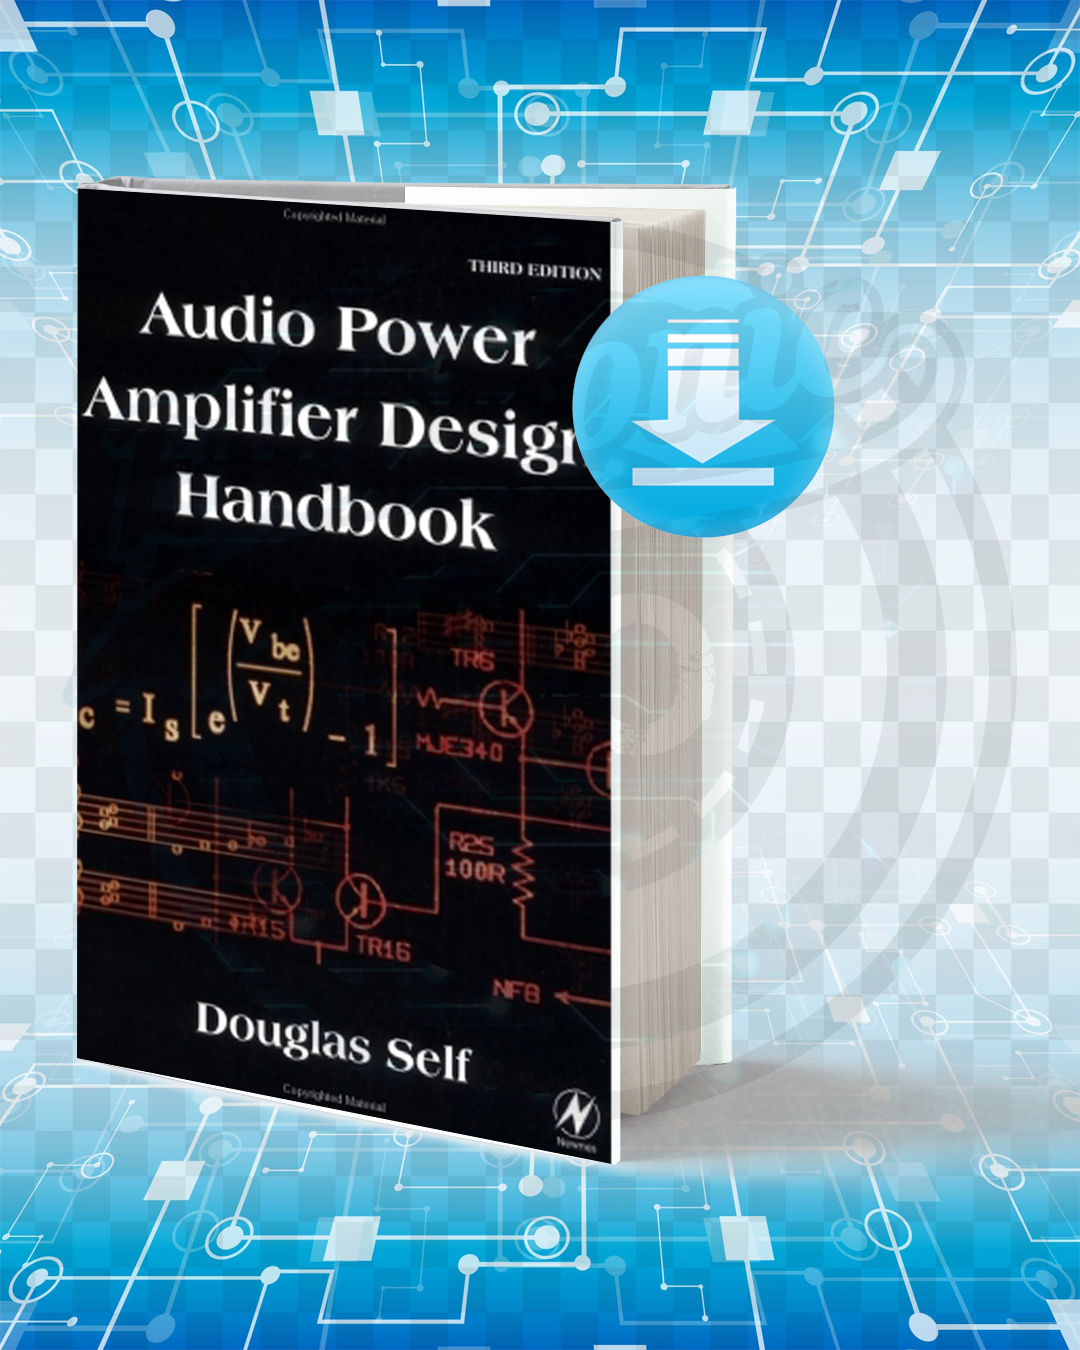 Free Book Audio Power Amplifier Design Handbook pdf.